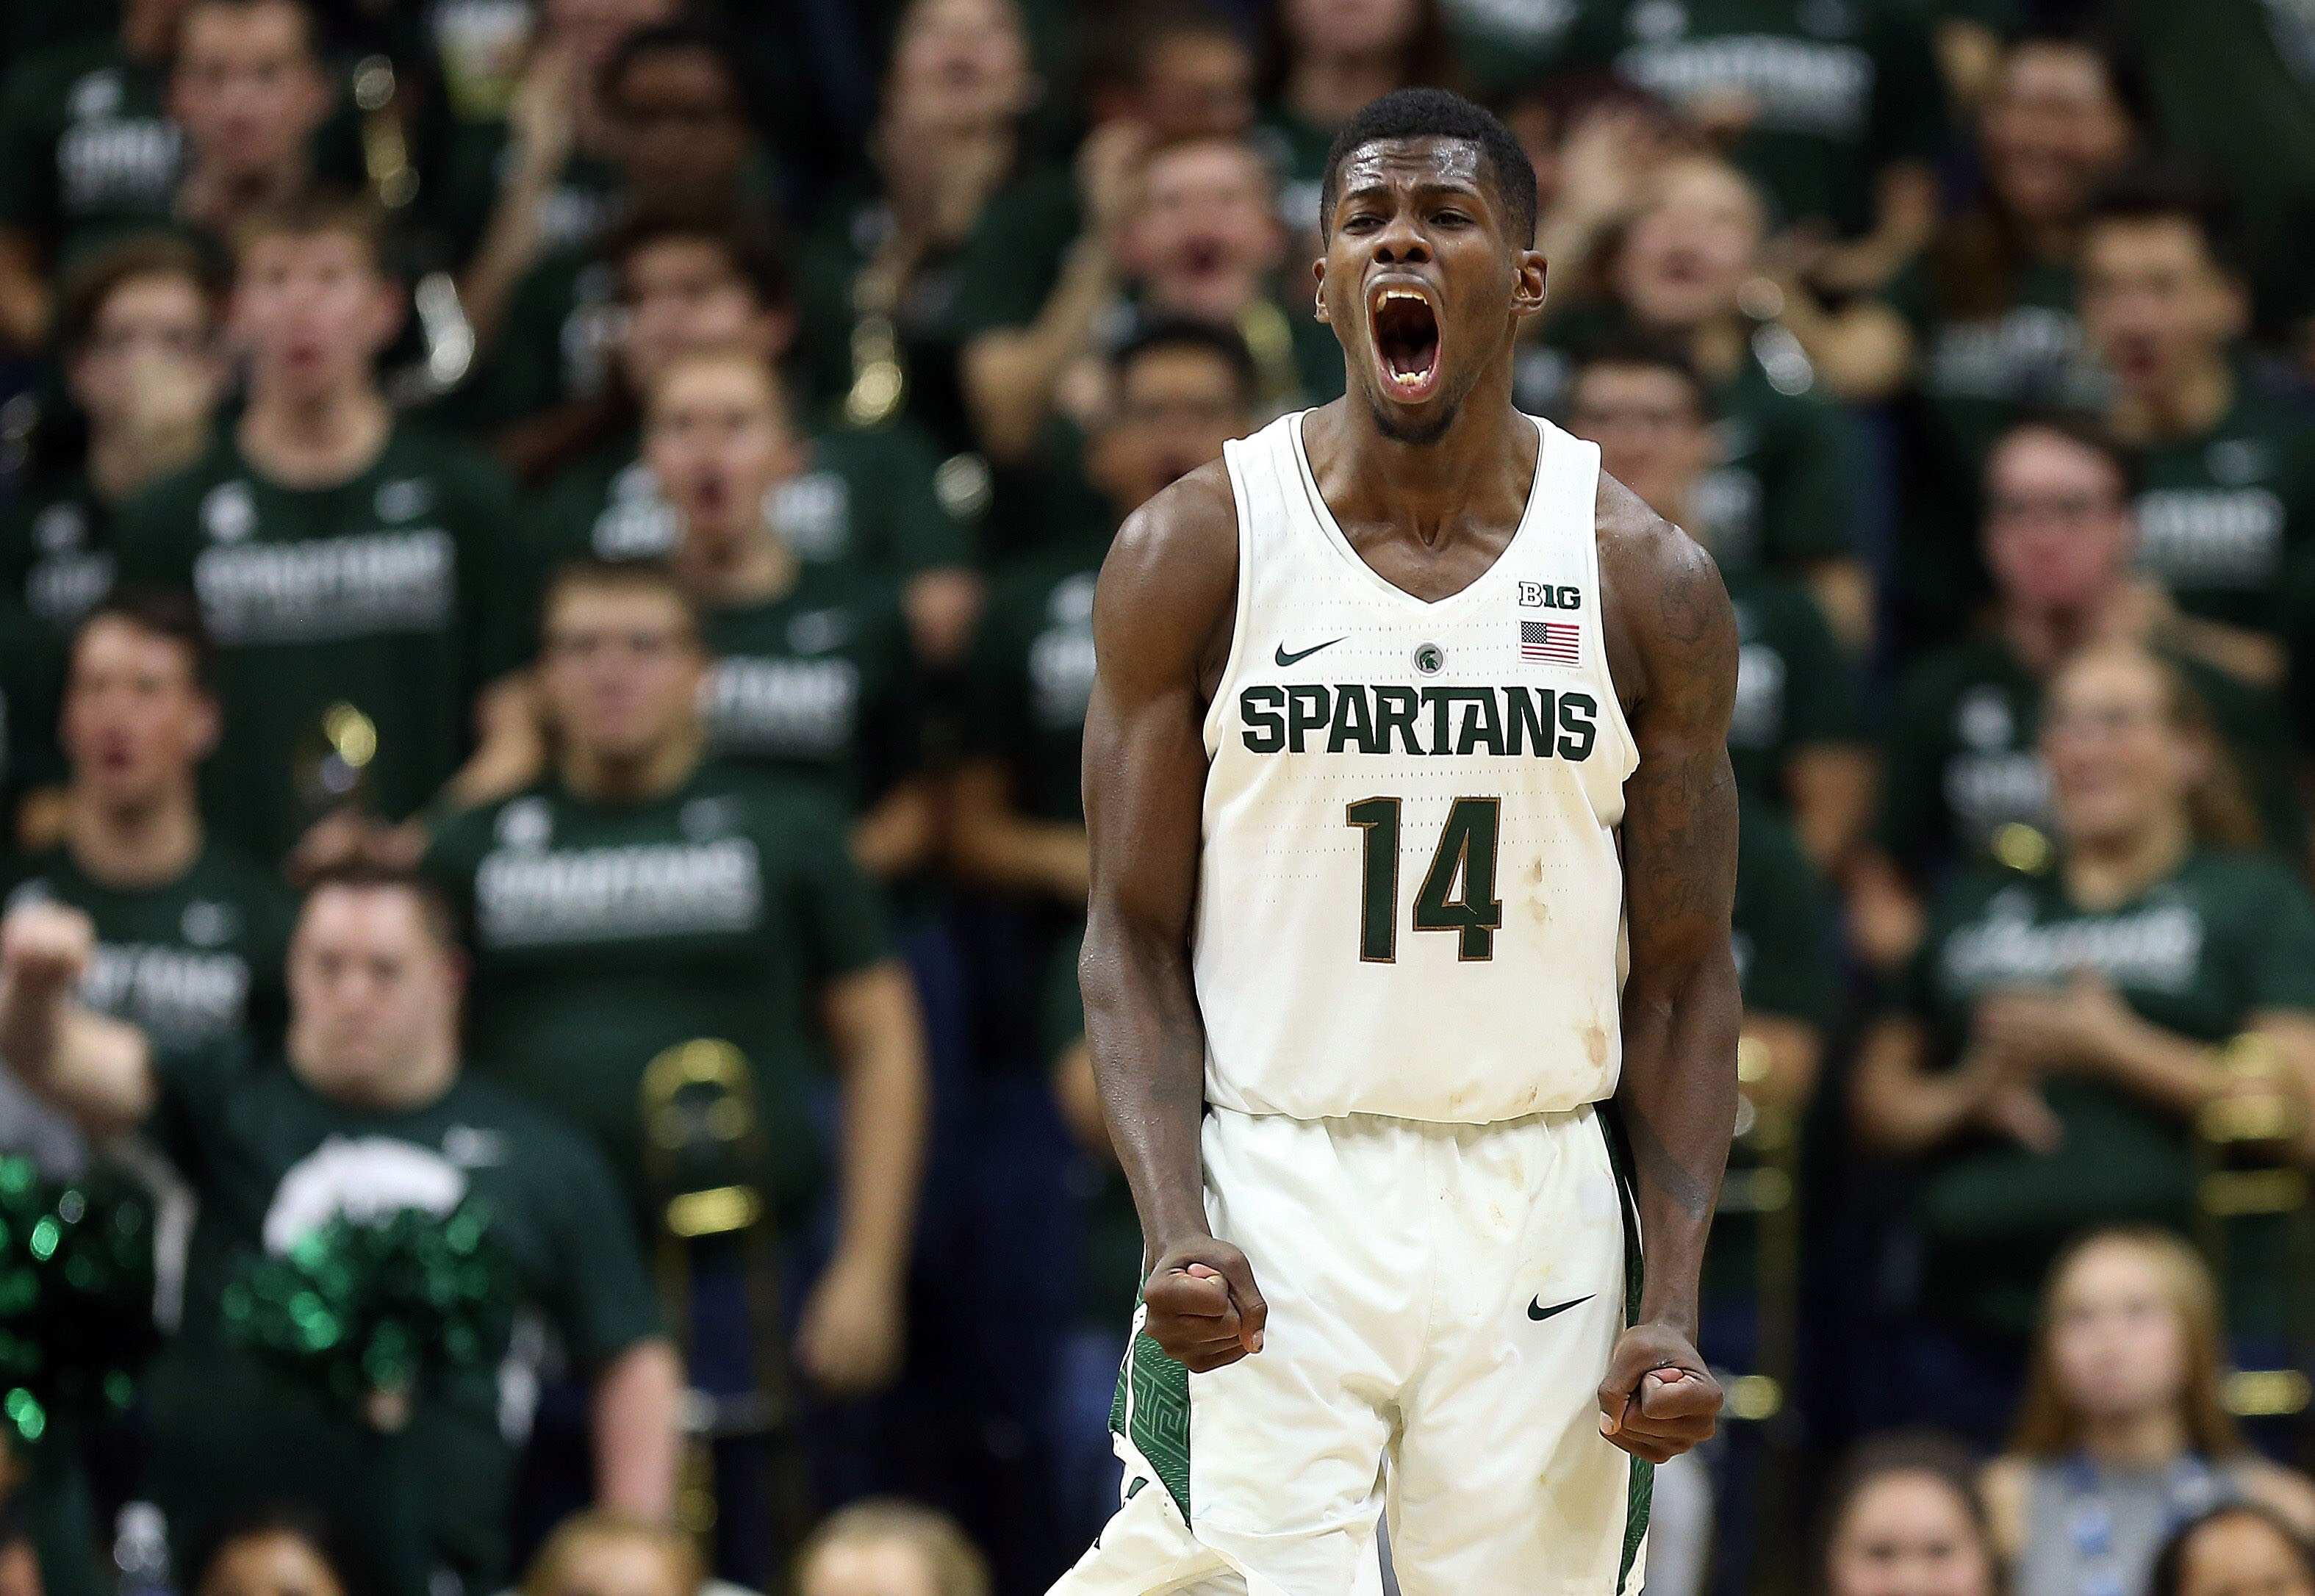 After a minor setback, Eron Harris is putting the world on notice